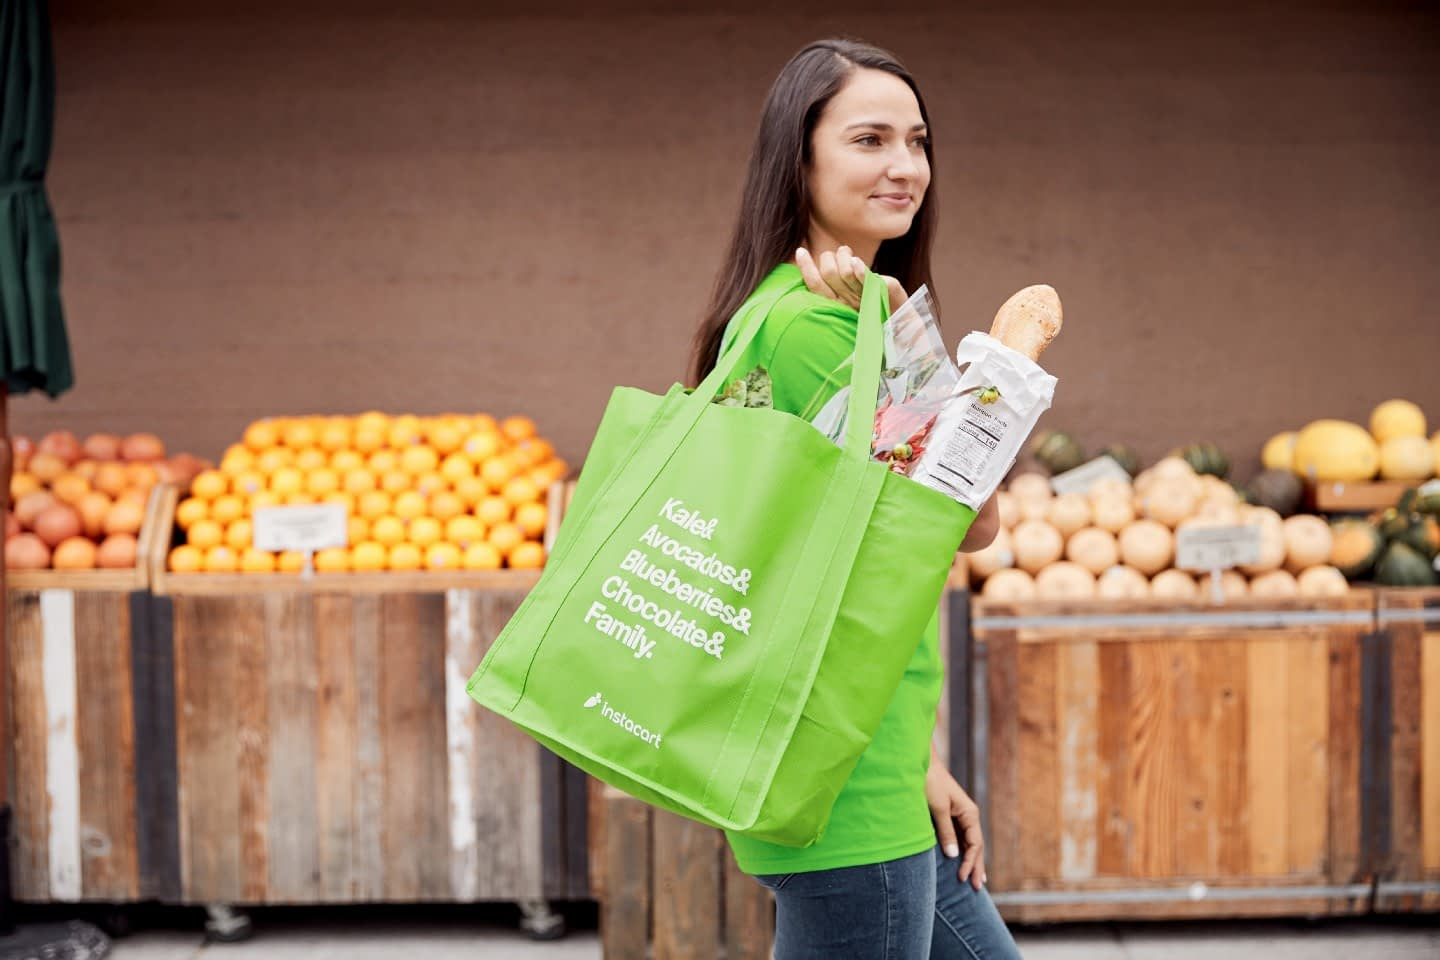 Tech-stack of an on-demand grocery delivery app like Instacart